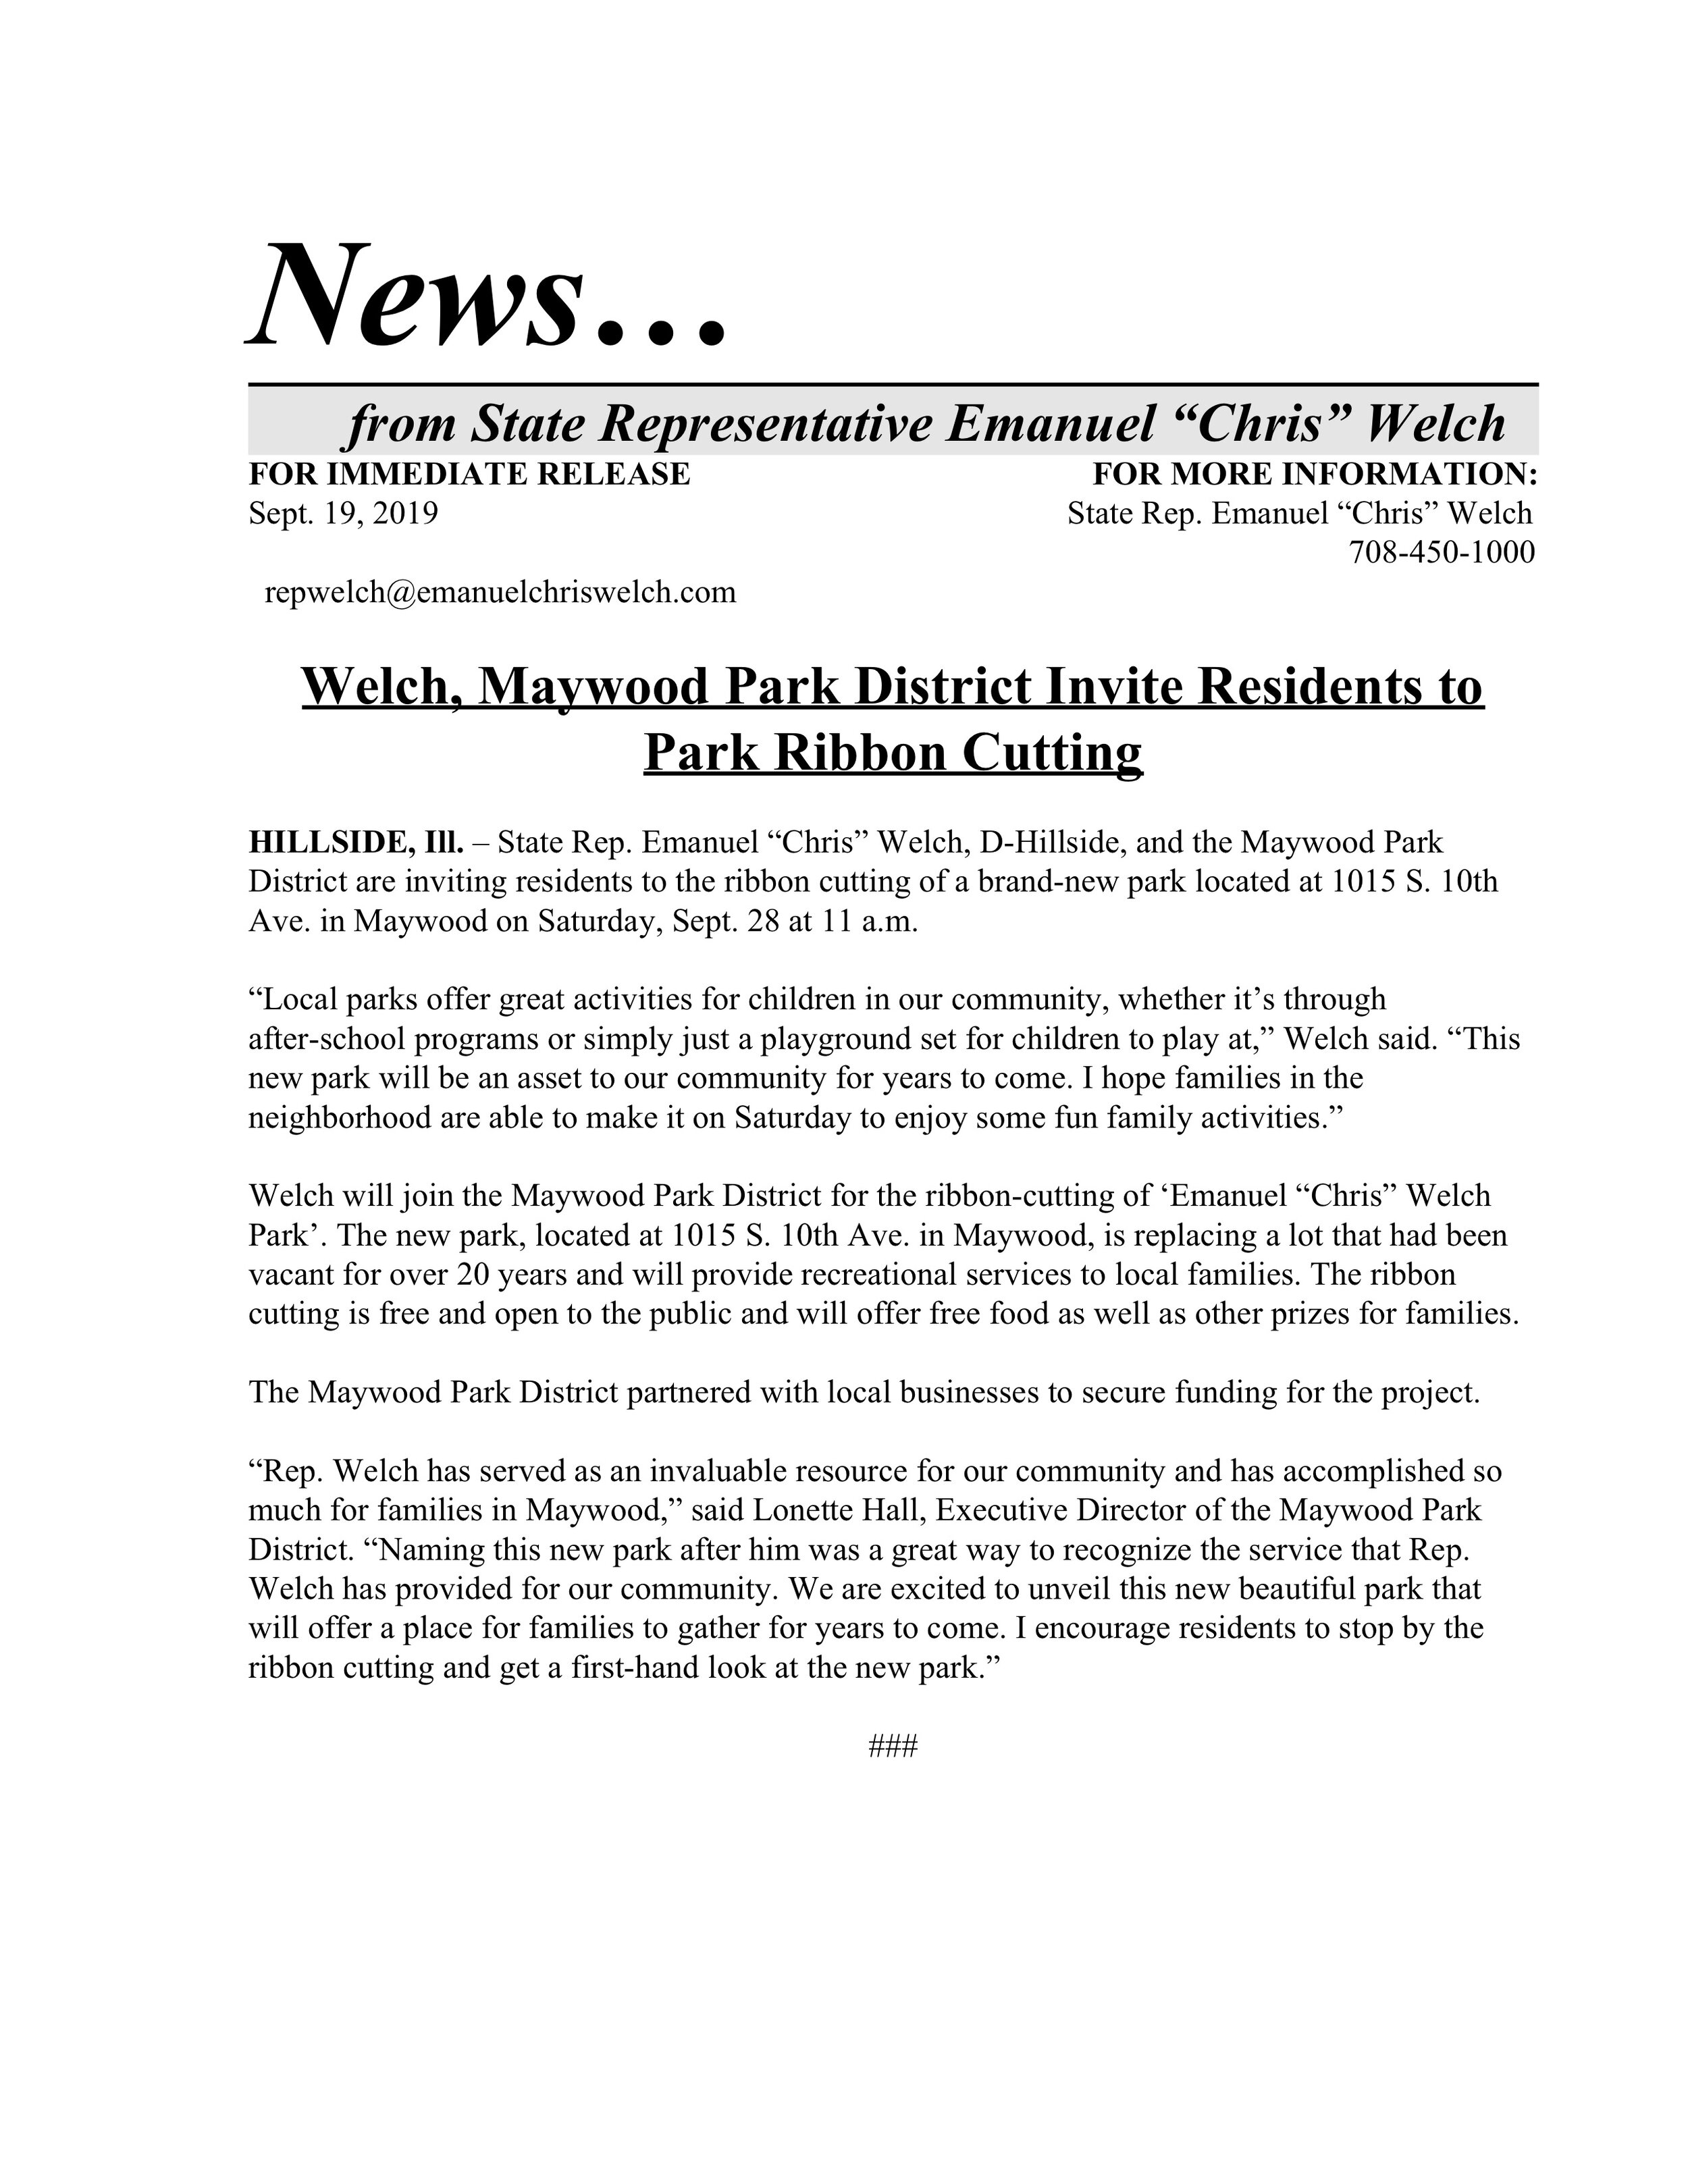 Welch, Maywood Park District Invite Residents to Park Ribbon Cutting  (September 19, 2019)